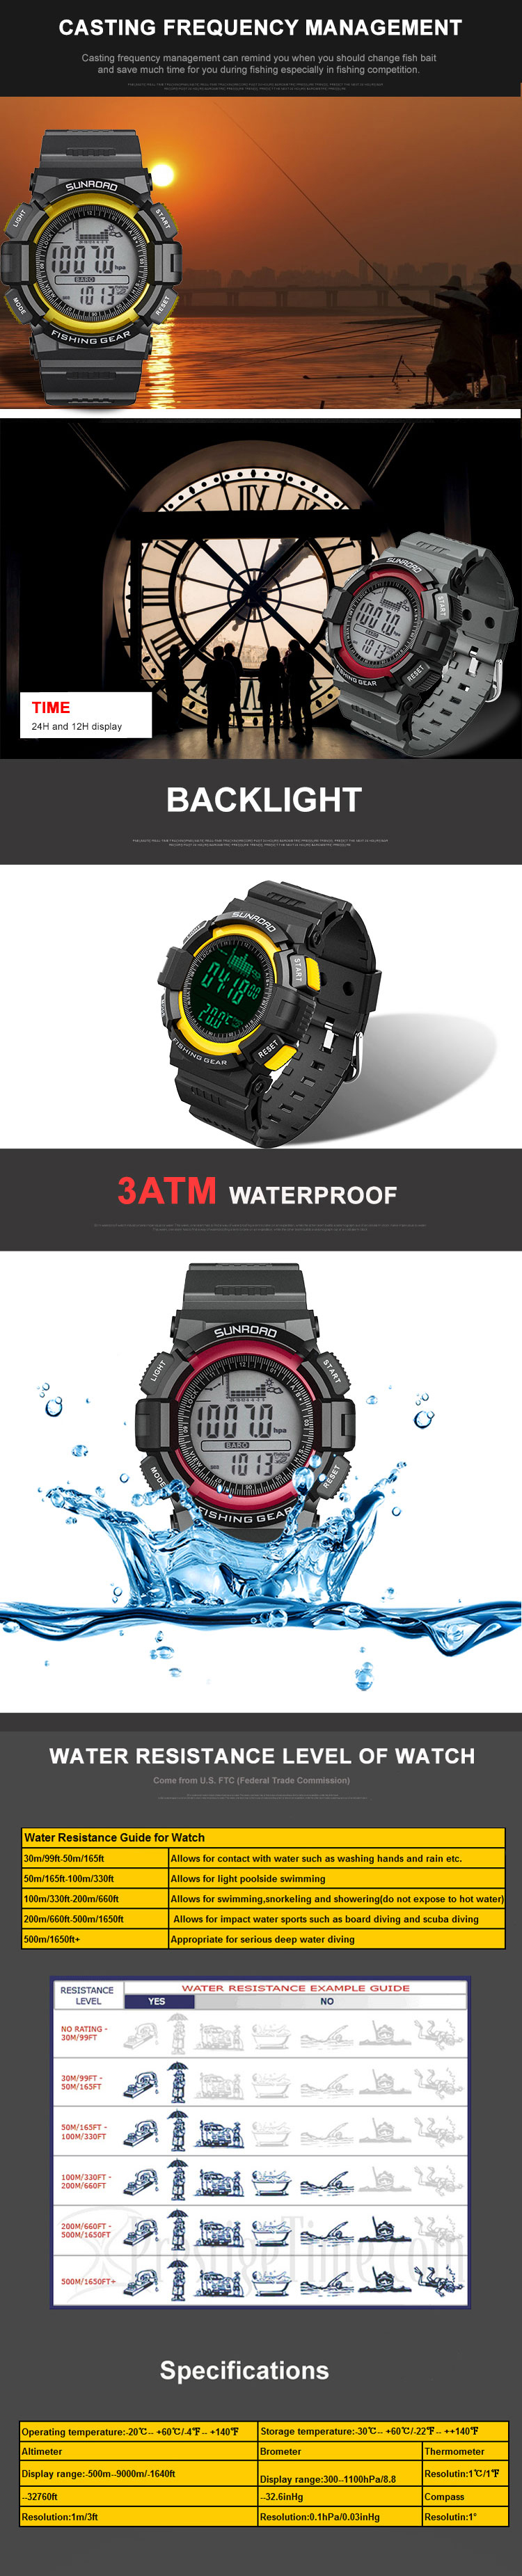 SUNROAD Fishing Barometer Watch FR711A FR712A FR713A FR715A Multifunction Waterproof Altimeter